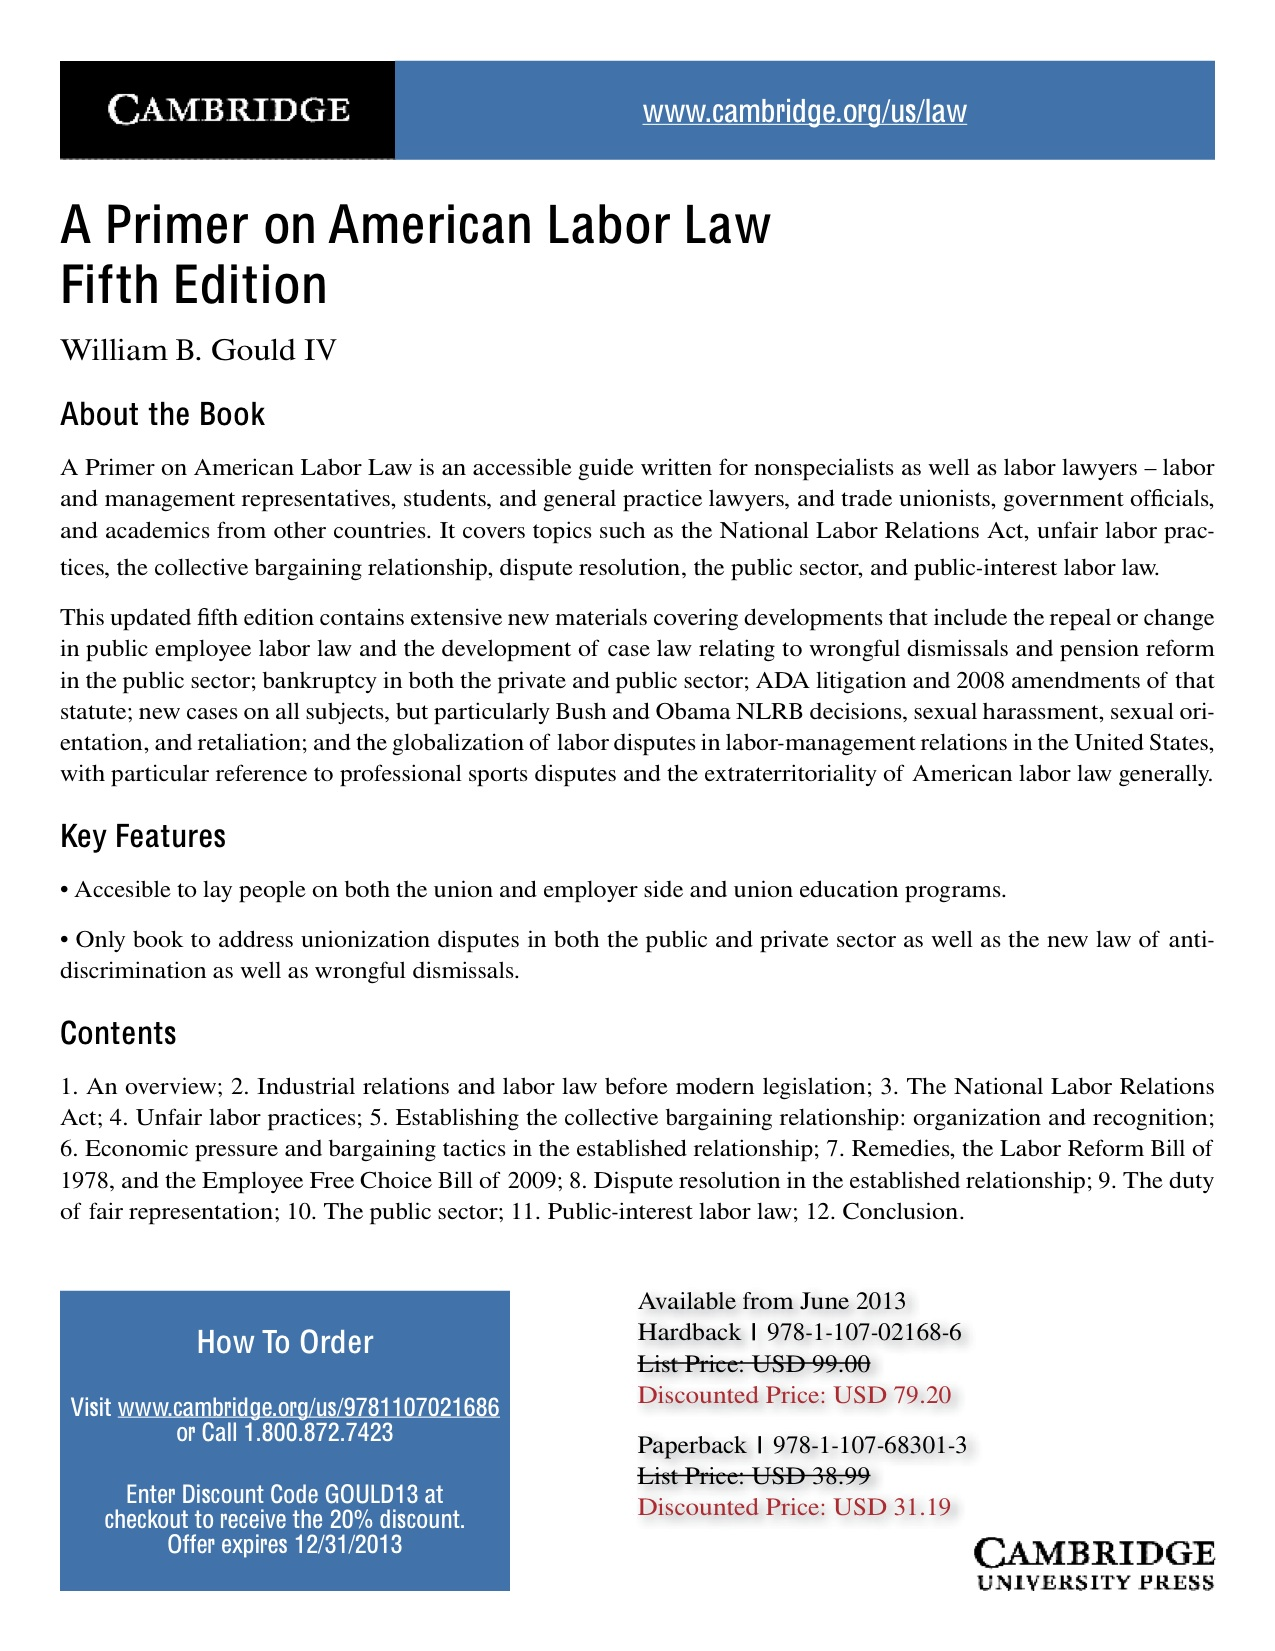 legality of labor and employment law Free employment/labor law information for individuals and small businesses written by lawyers but in easy to understand legal terms freeadvicecom includes legal forms, state laws, forums, books, freeadvice answers, an attorney directory, and more.